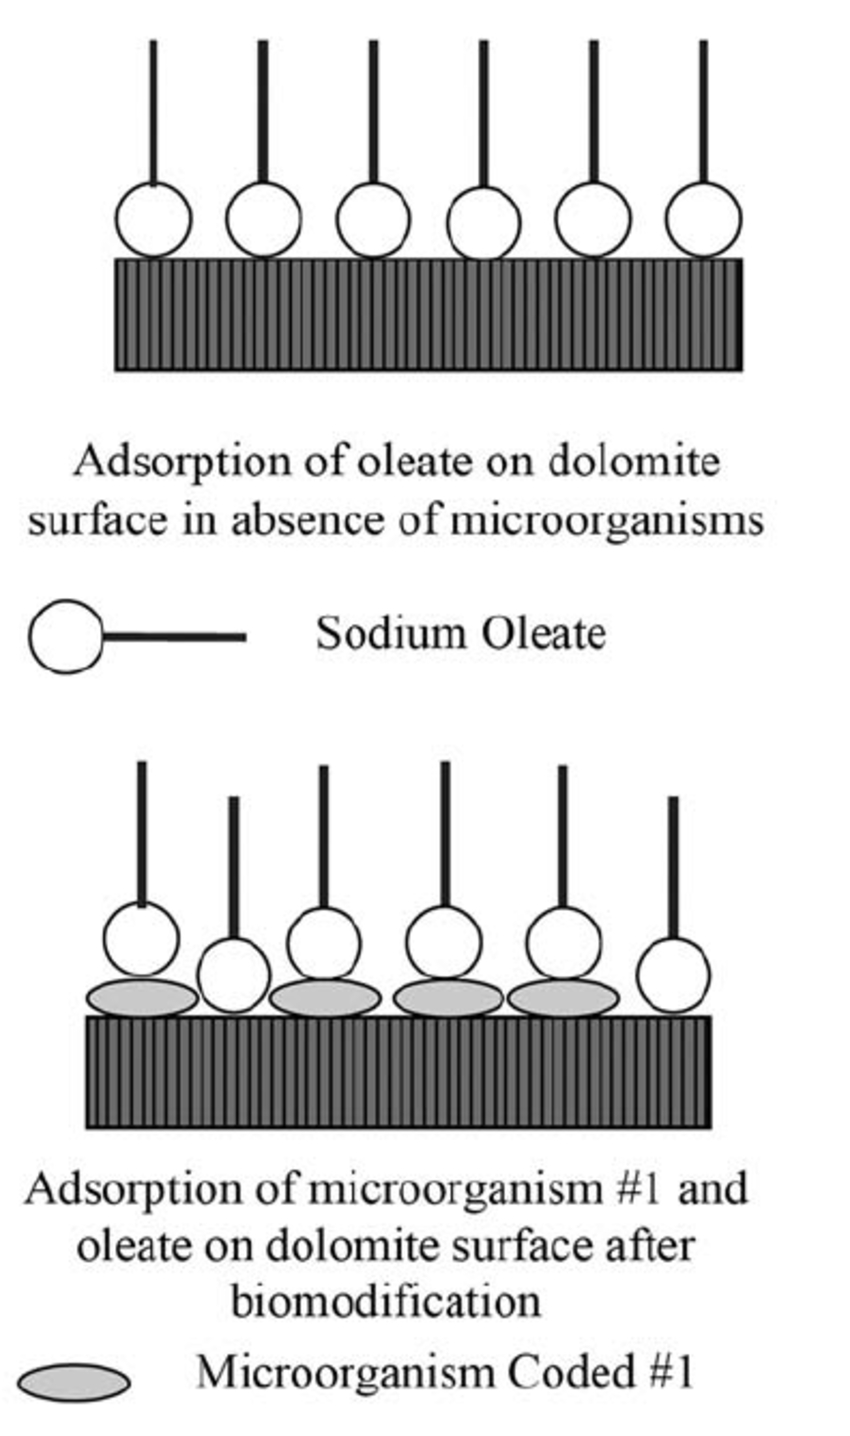 Adsorption of sodium oleate and microorganism #1 on